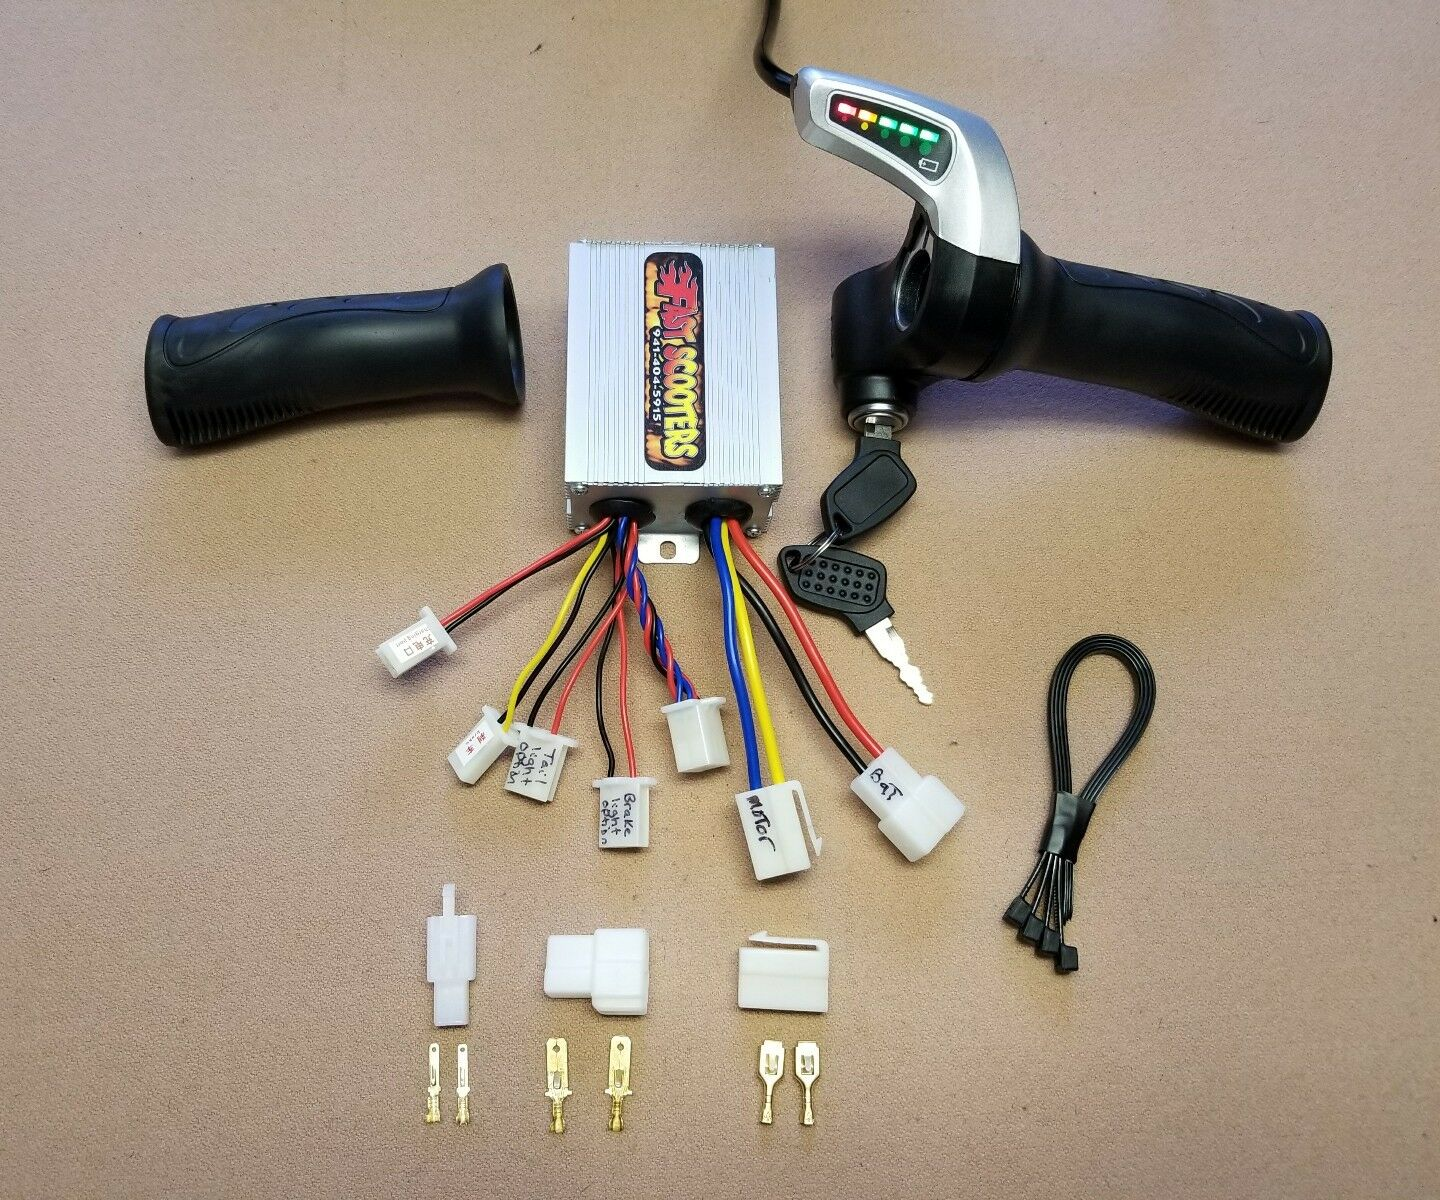 24V - 500 Watt Controller and thredtle with key (Brushed Motor) Ebike Scooter